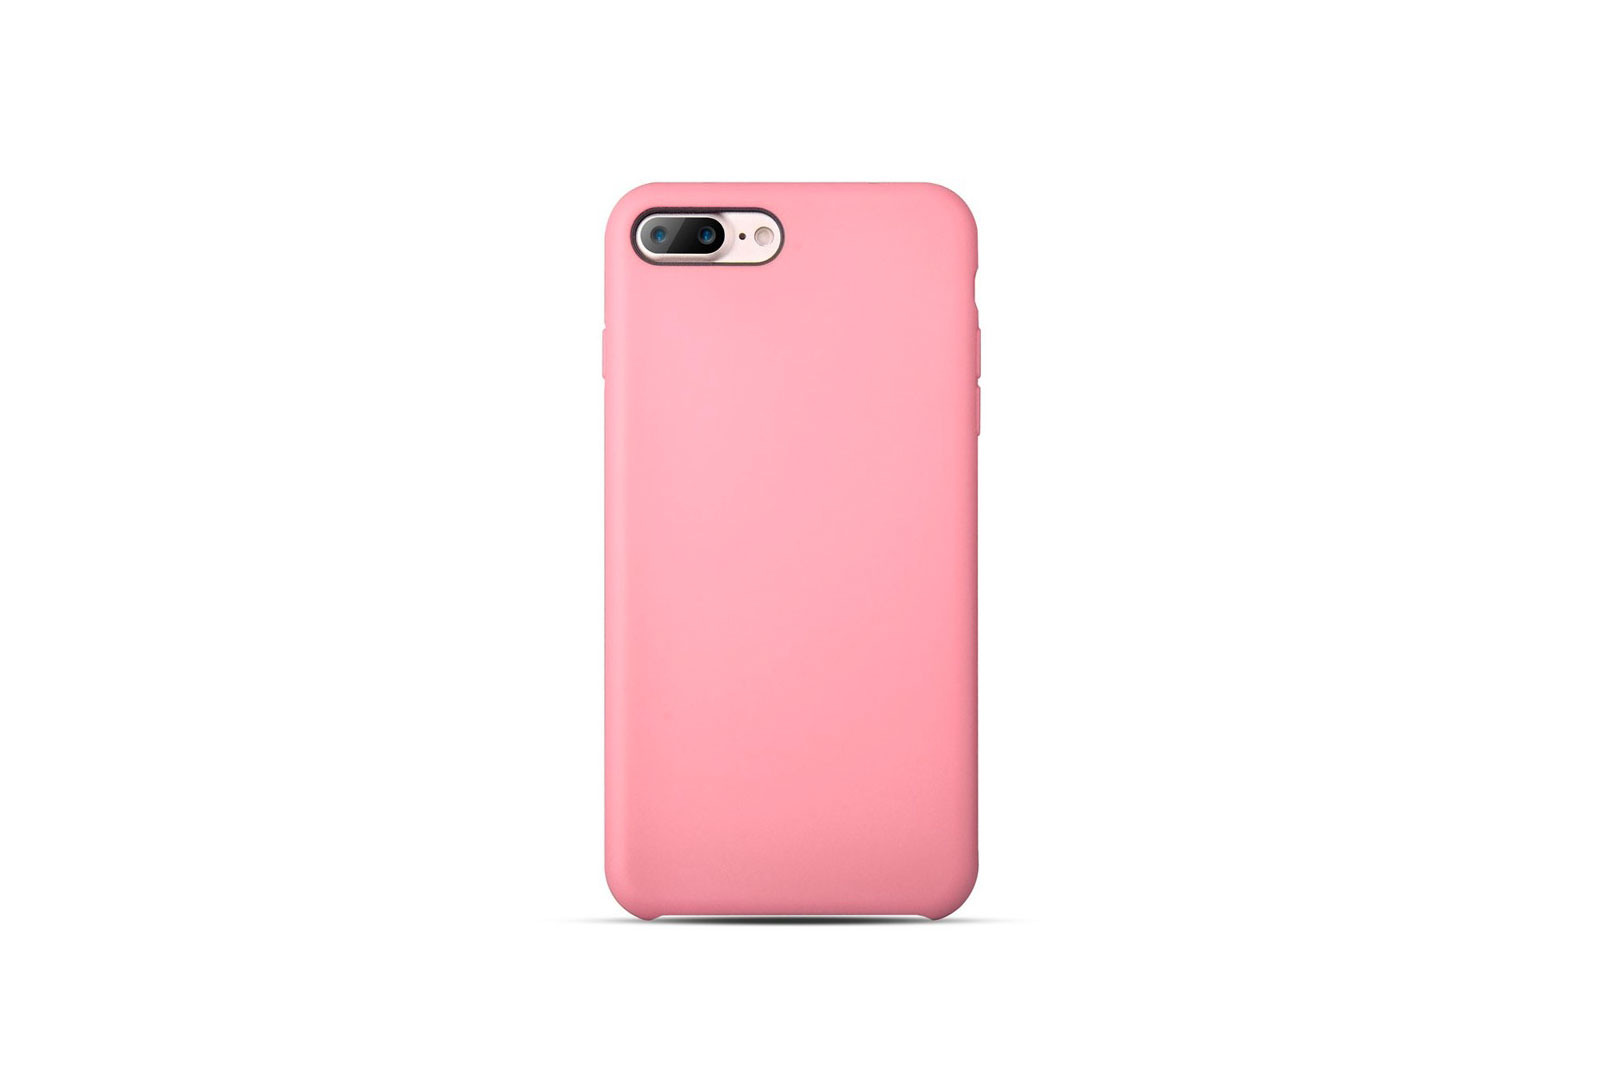 coque silicone souple rose pour iphone 7 plus. Black Bedroom Furniture Sets. Home Design Ideas